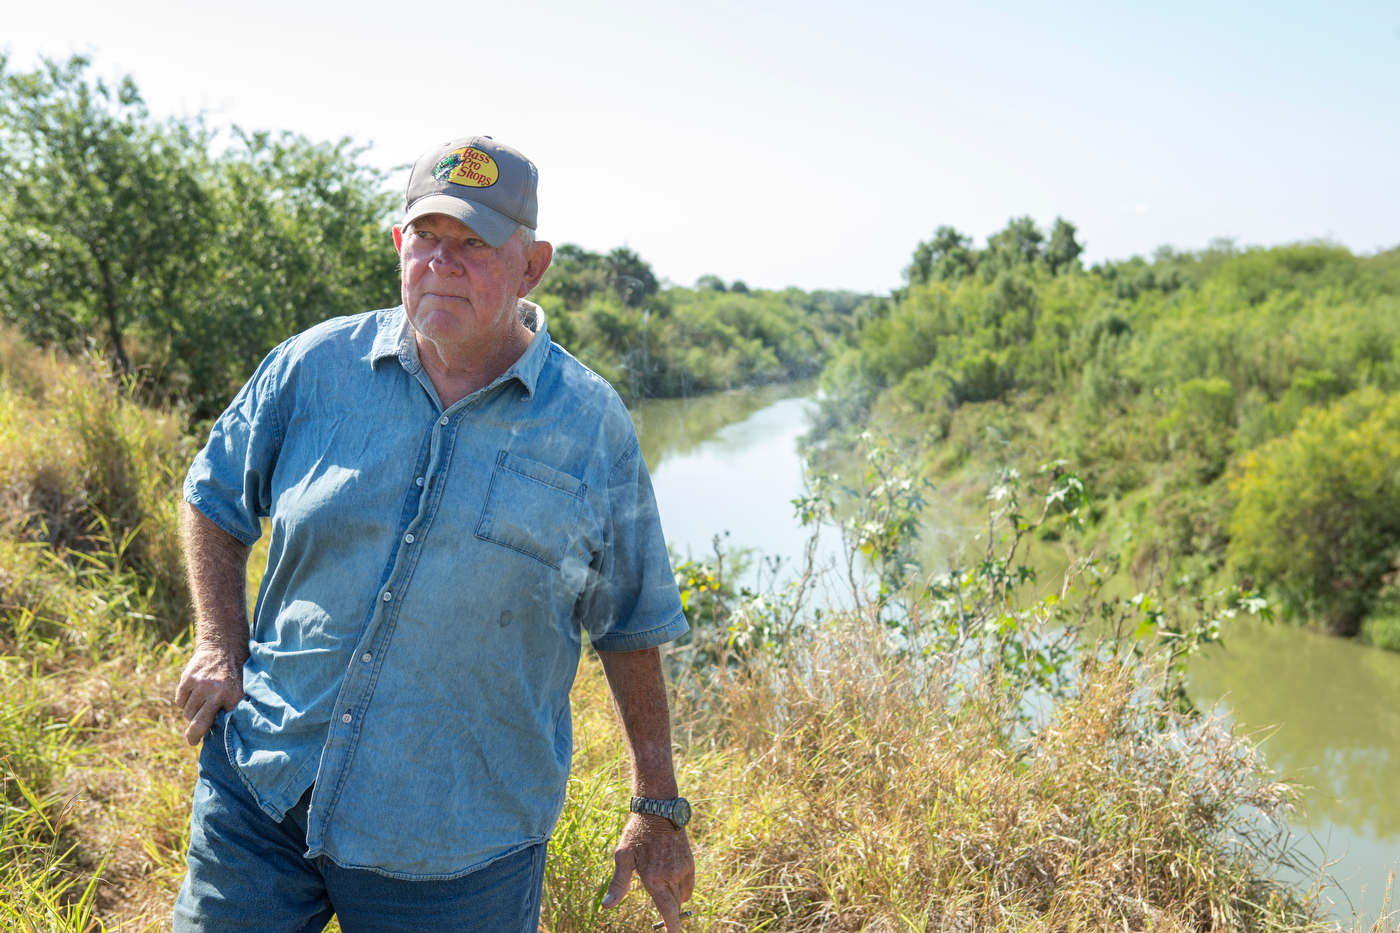 Rusty Monsees, an anti-immigration activist whose land is cut in half by the border wall, stands on his property next to the Rio Grande, in the no man's land between the river and the fence.